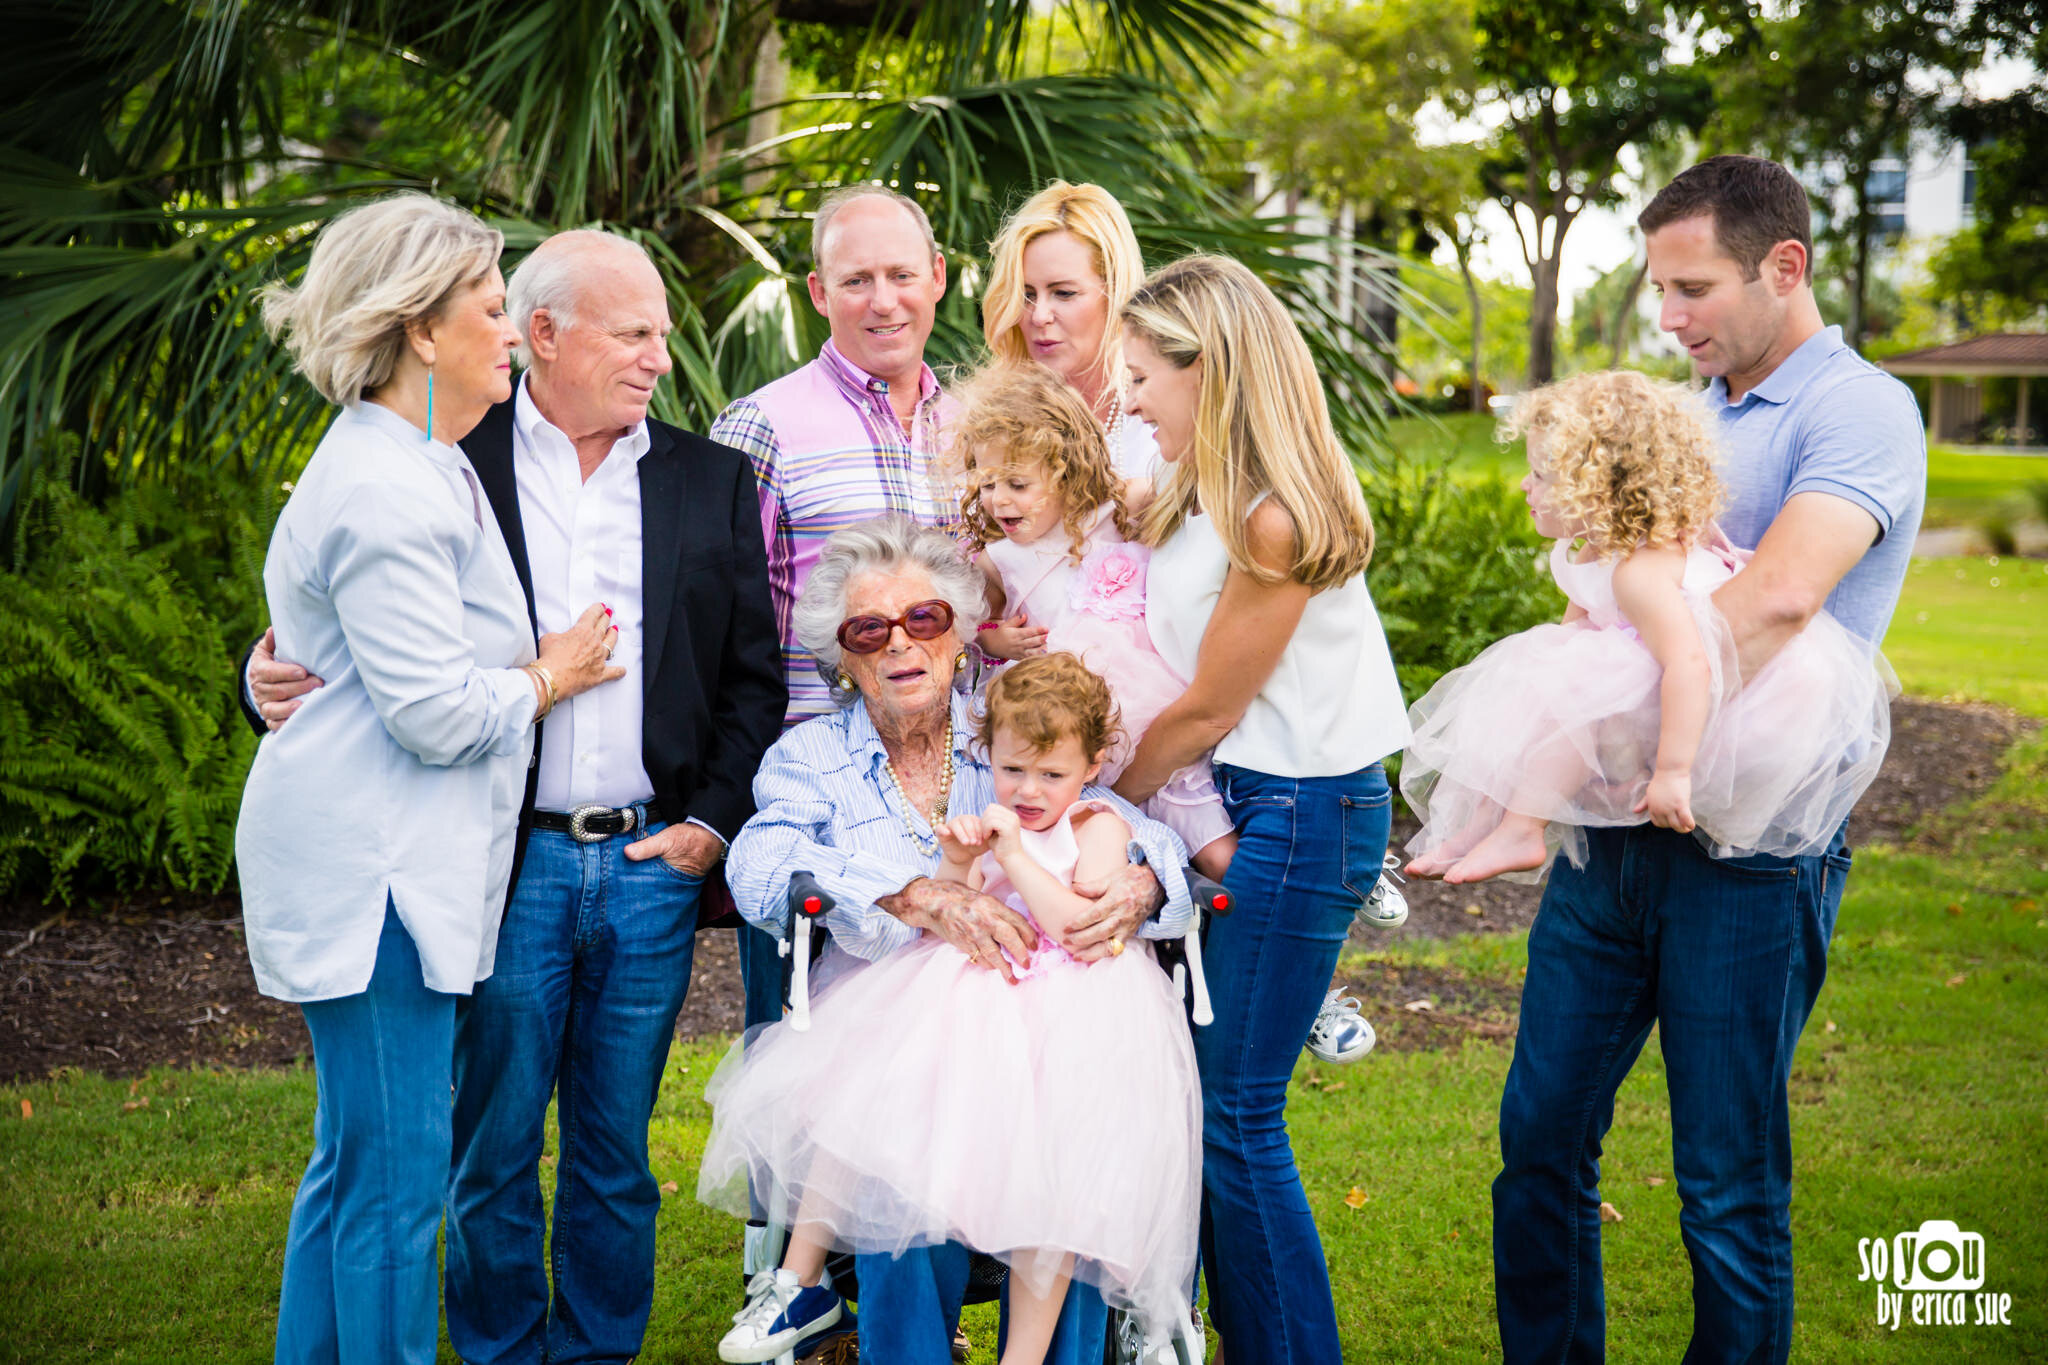 so-you-by-erica-sue-south-florida-extended-family-lifestyle-photo-session-2120.JPG